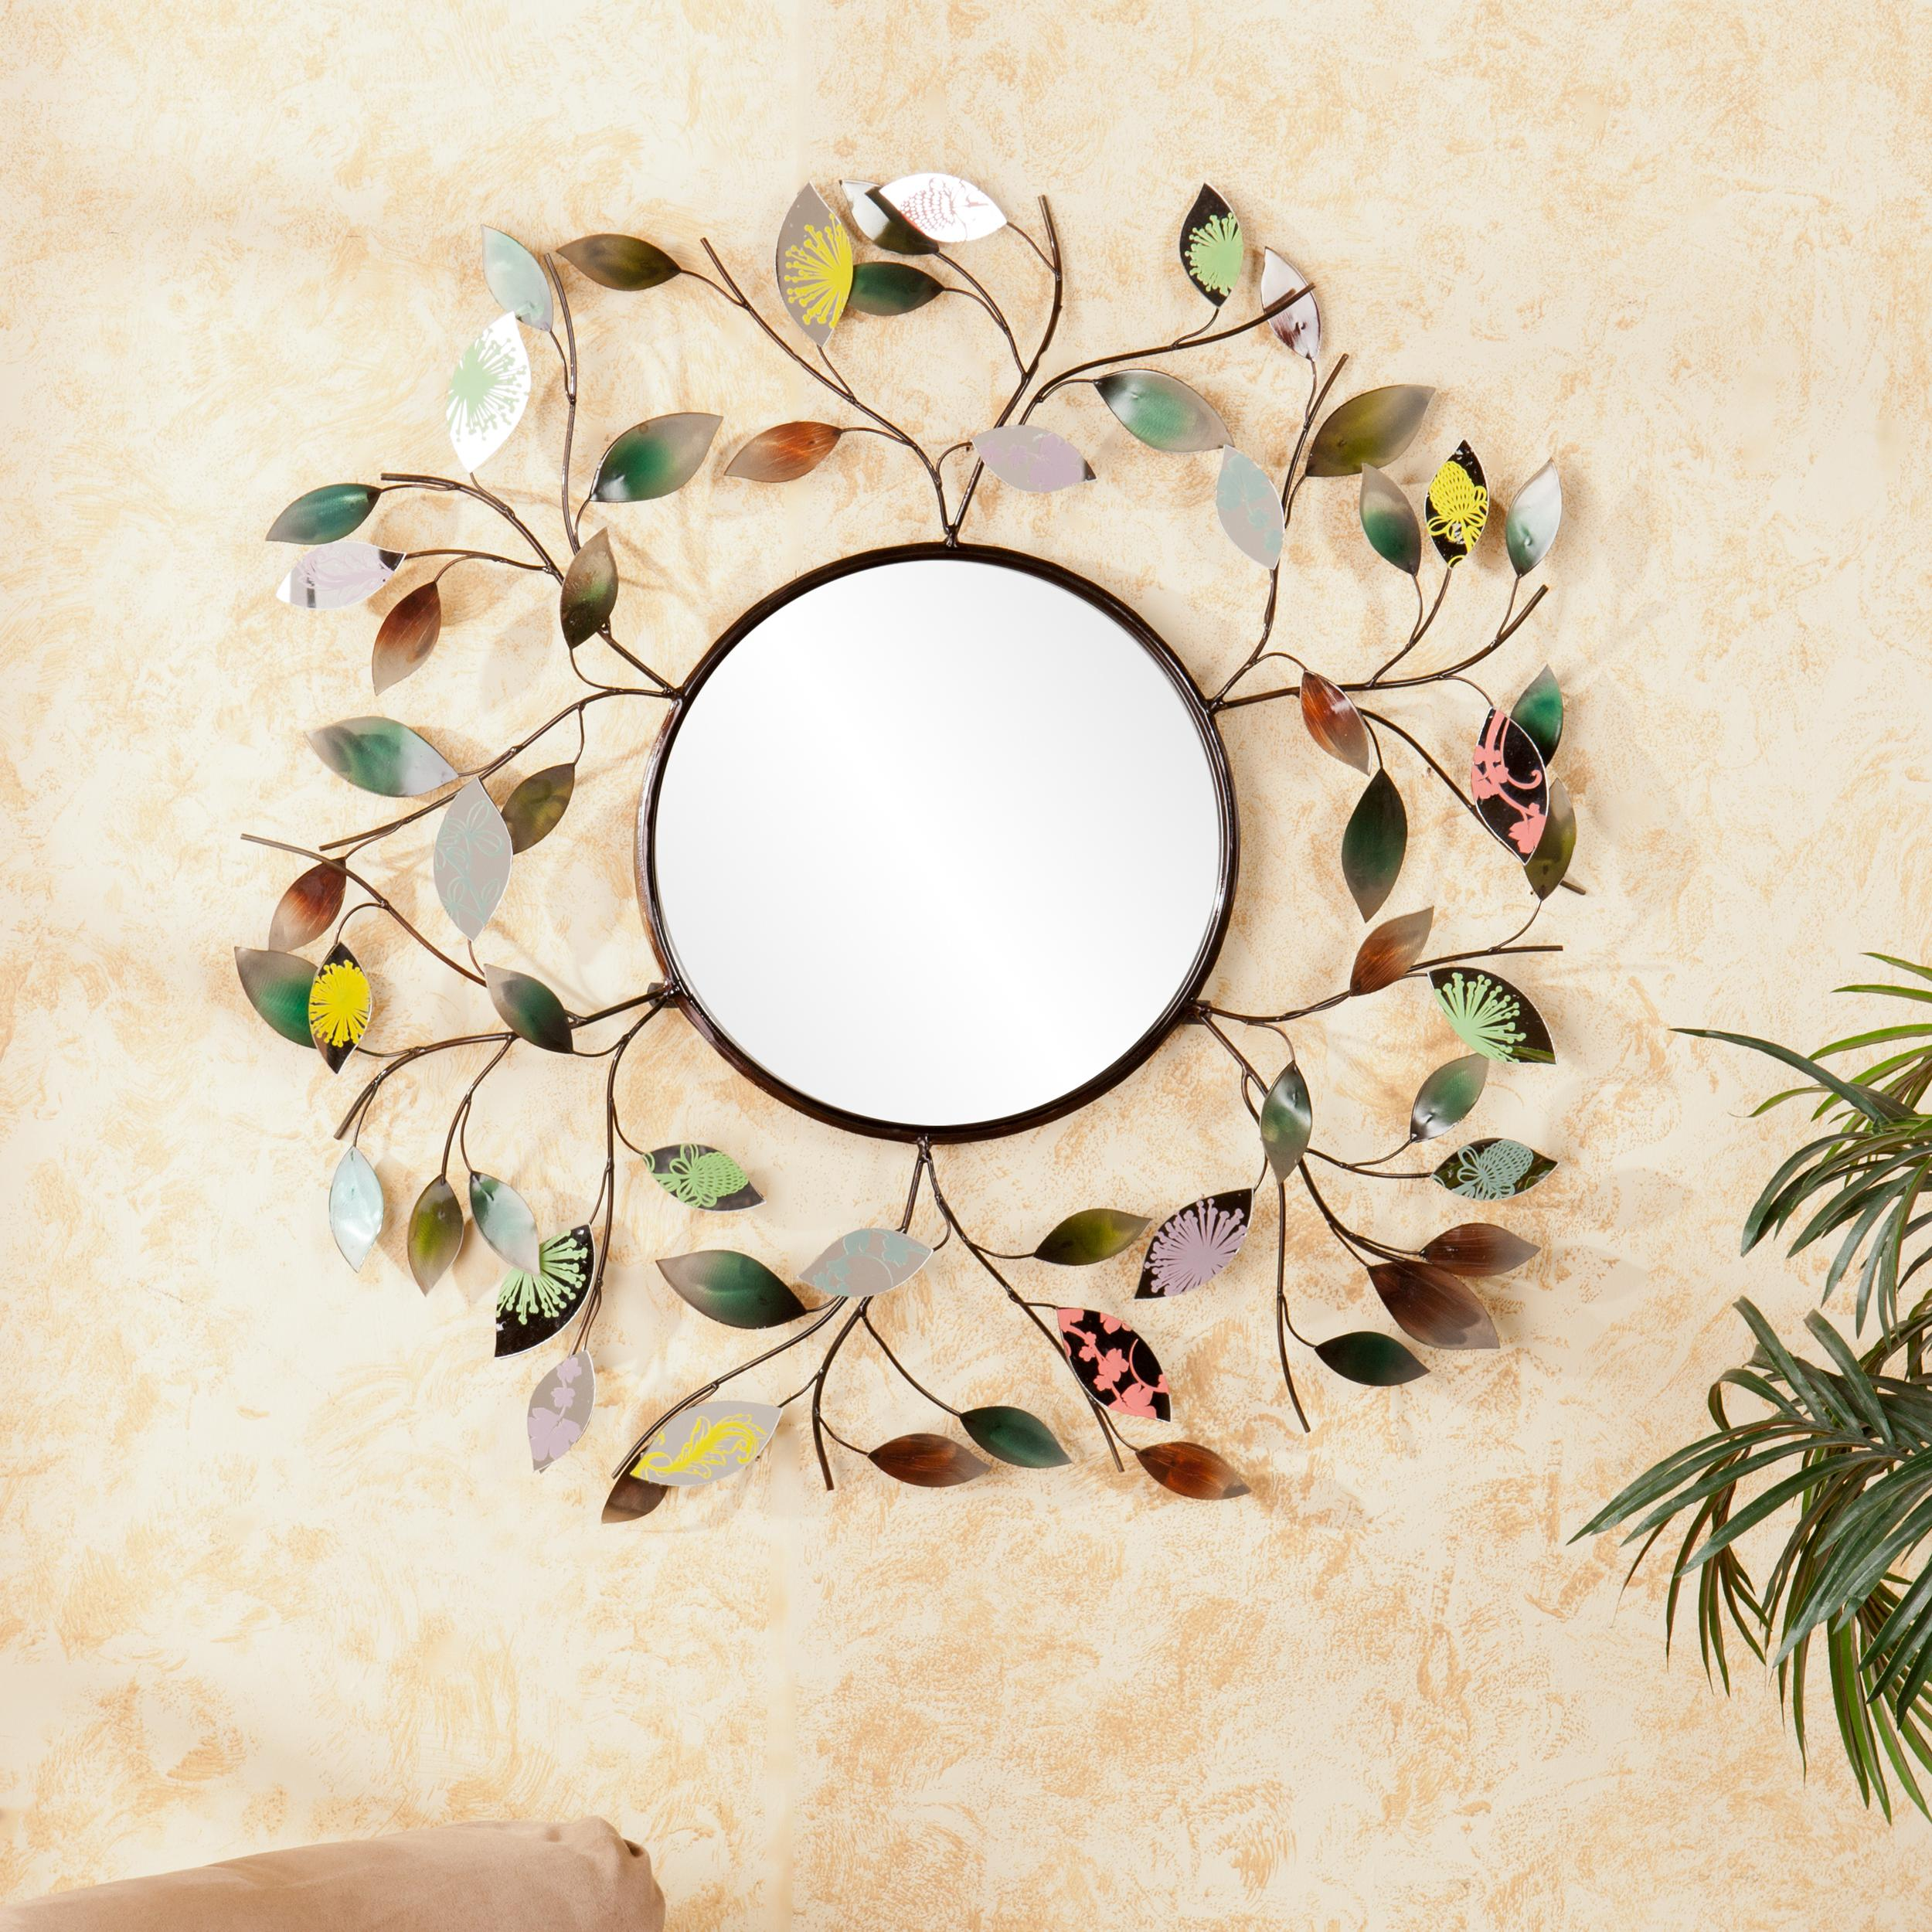 stickers circle diy mirror decor art on stick as decoration wall mirrors